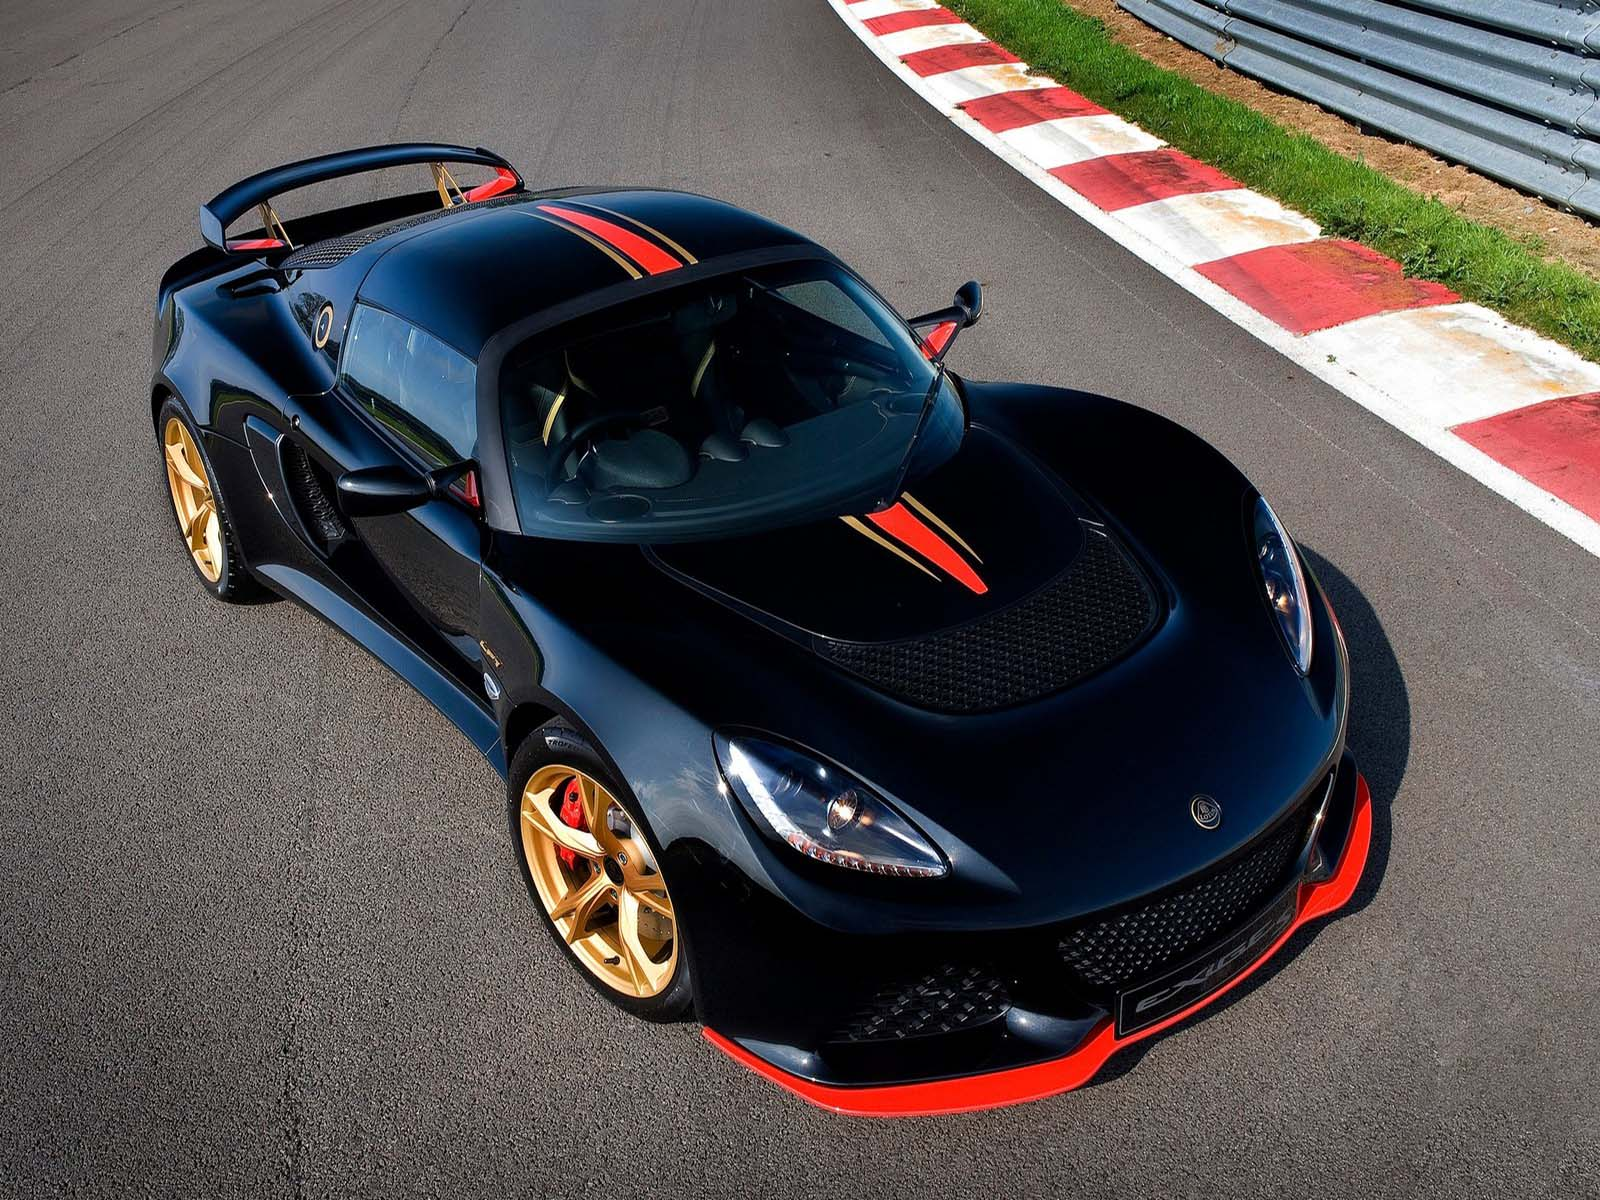 Lotus-Exige-LF-Limited-Edition-Free-Car-wallpaper-wp560265